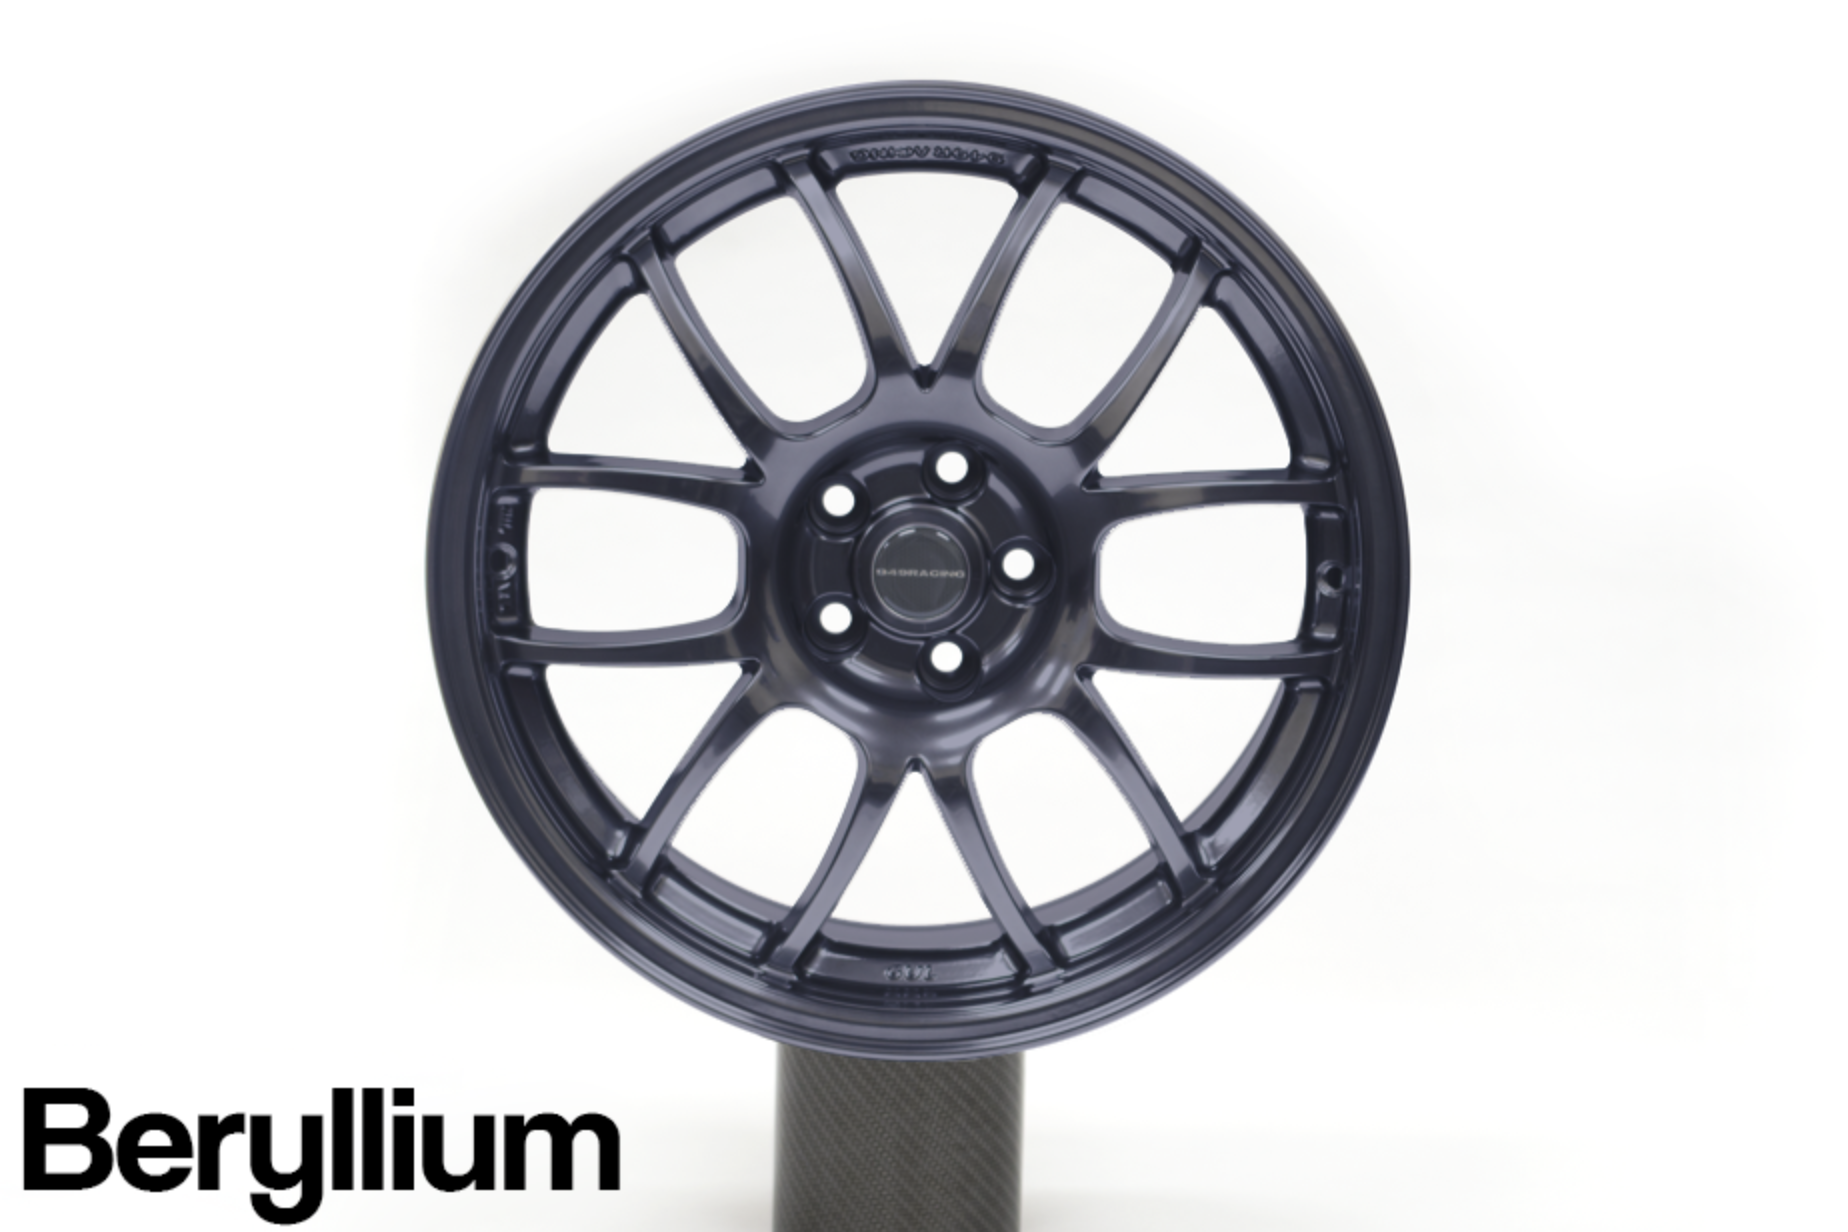 949 Racing 6UL 17x9 +40mm Beryllium - 2013+ FR-S / BRZ / 86 / 2014+ Forester